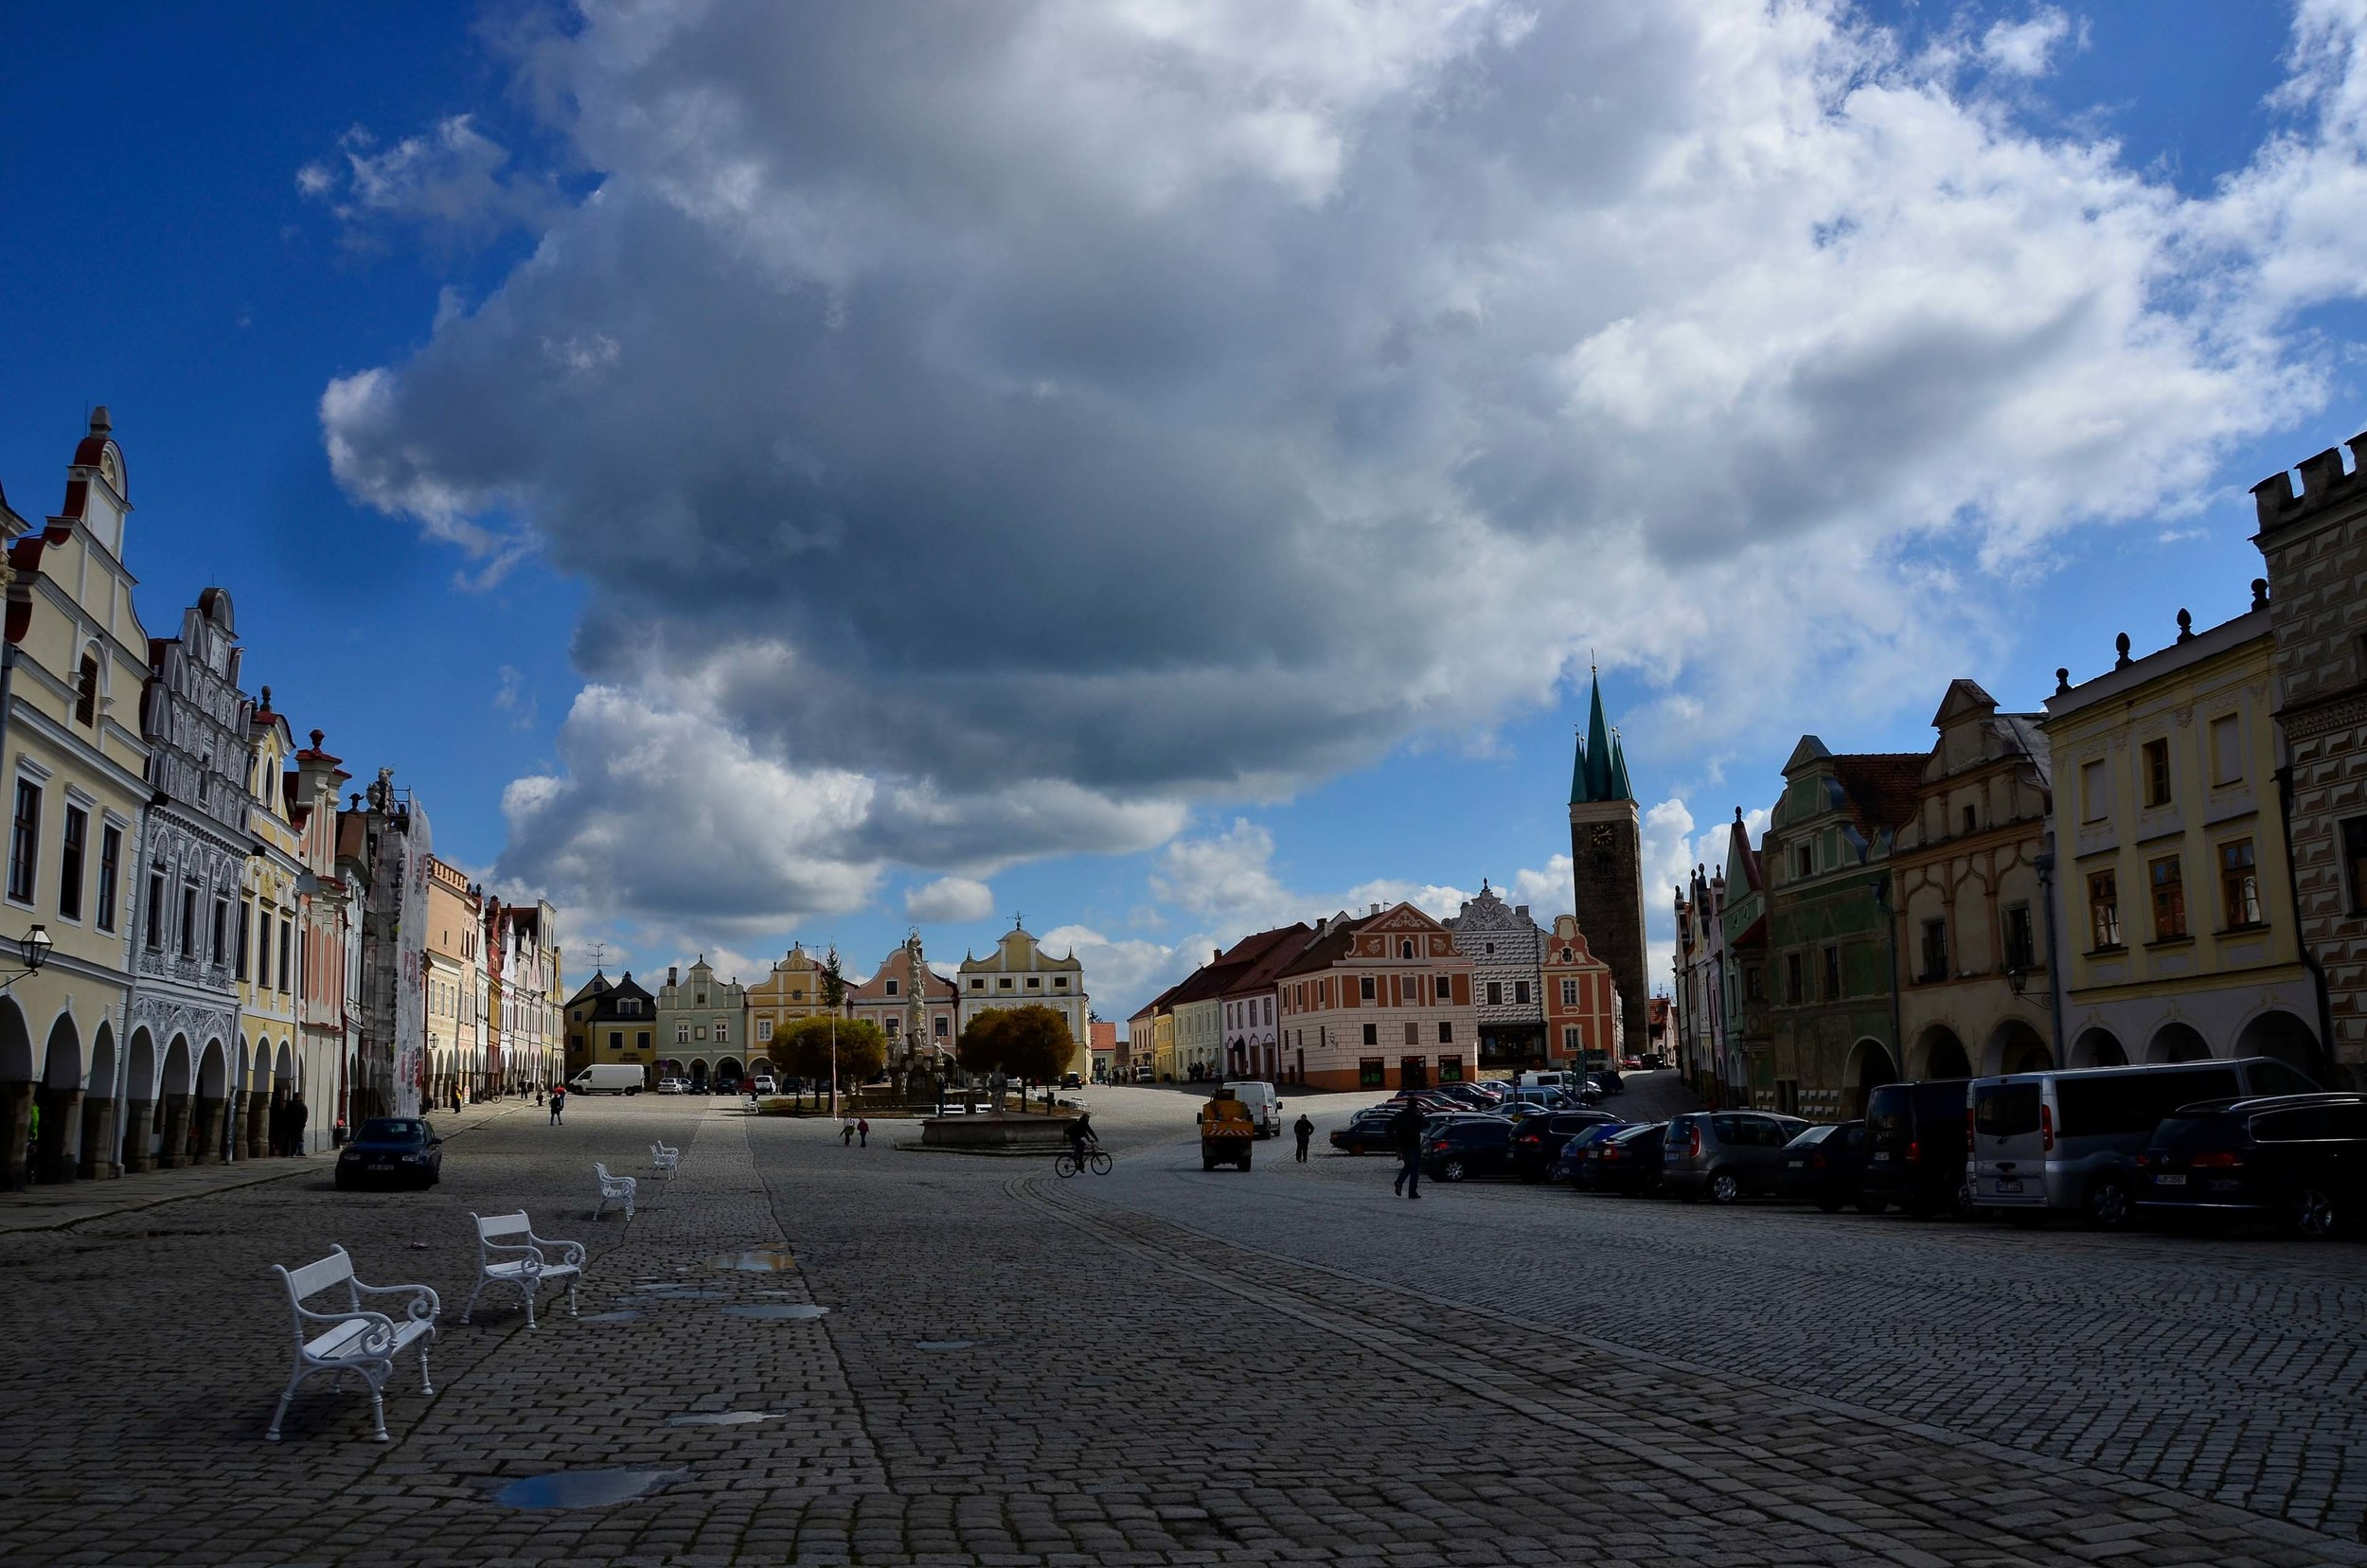 Telc, Czech Republic 2014